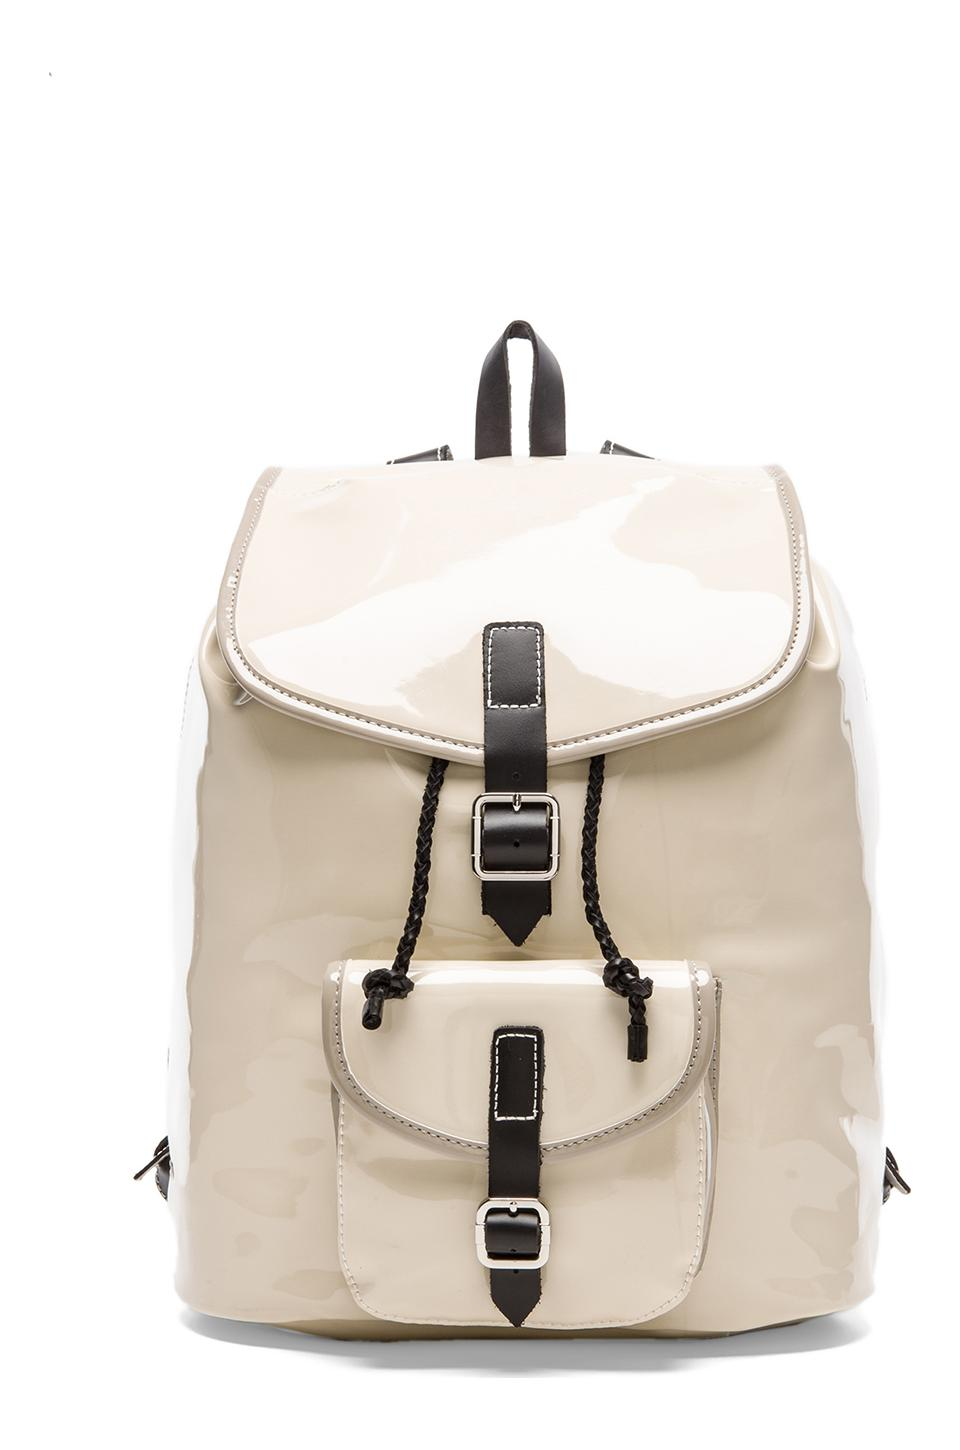 Harper Ave Mueck Backpack in Light Taupe